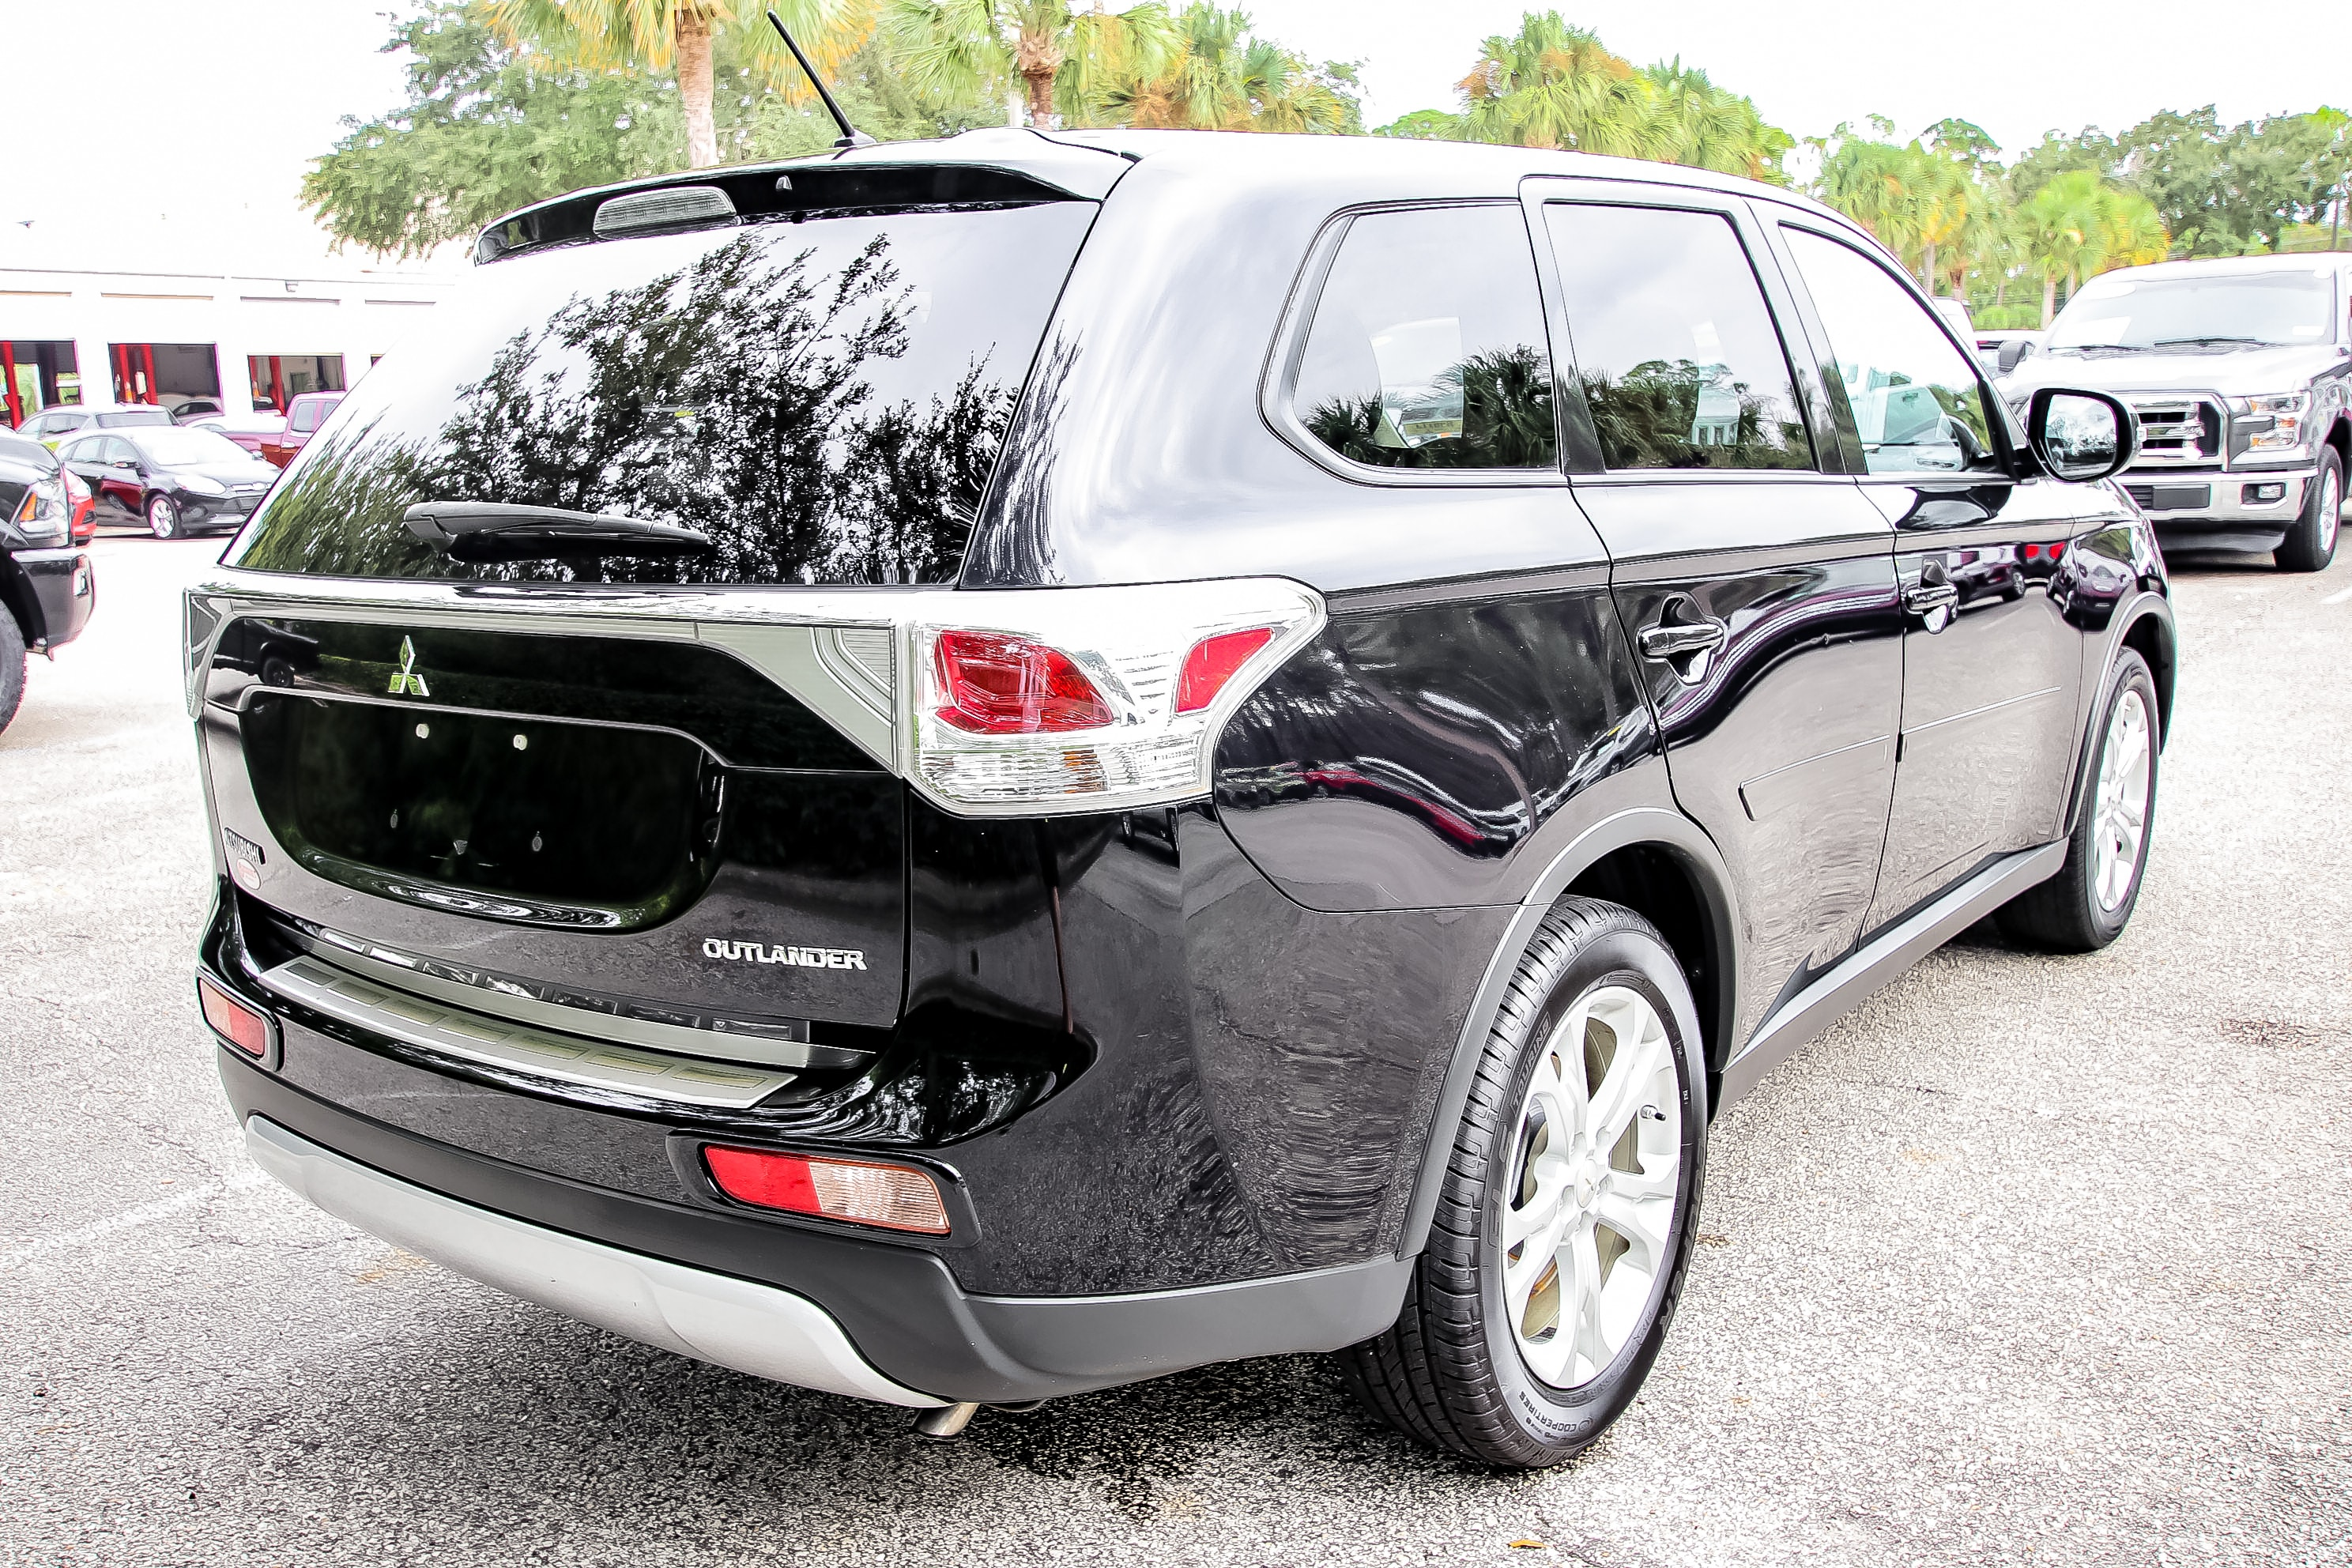 2015 Mitsubishi Outlander - Fair Car Ownership